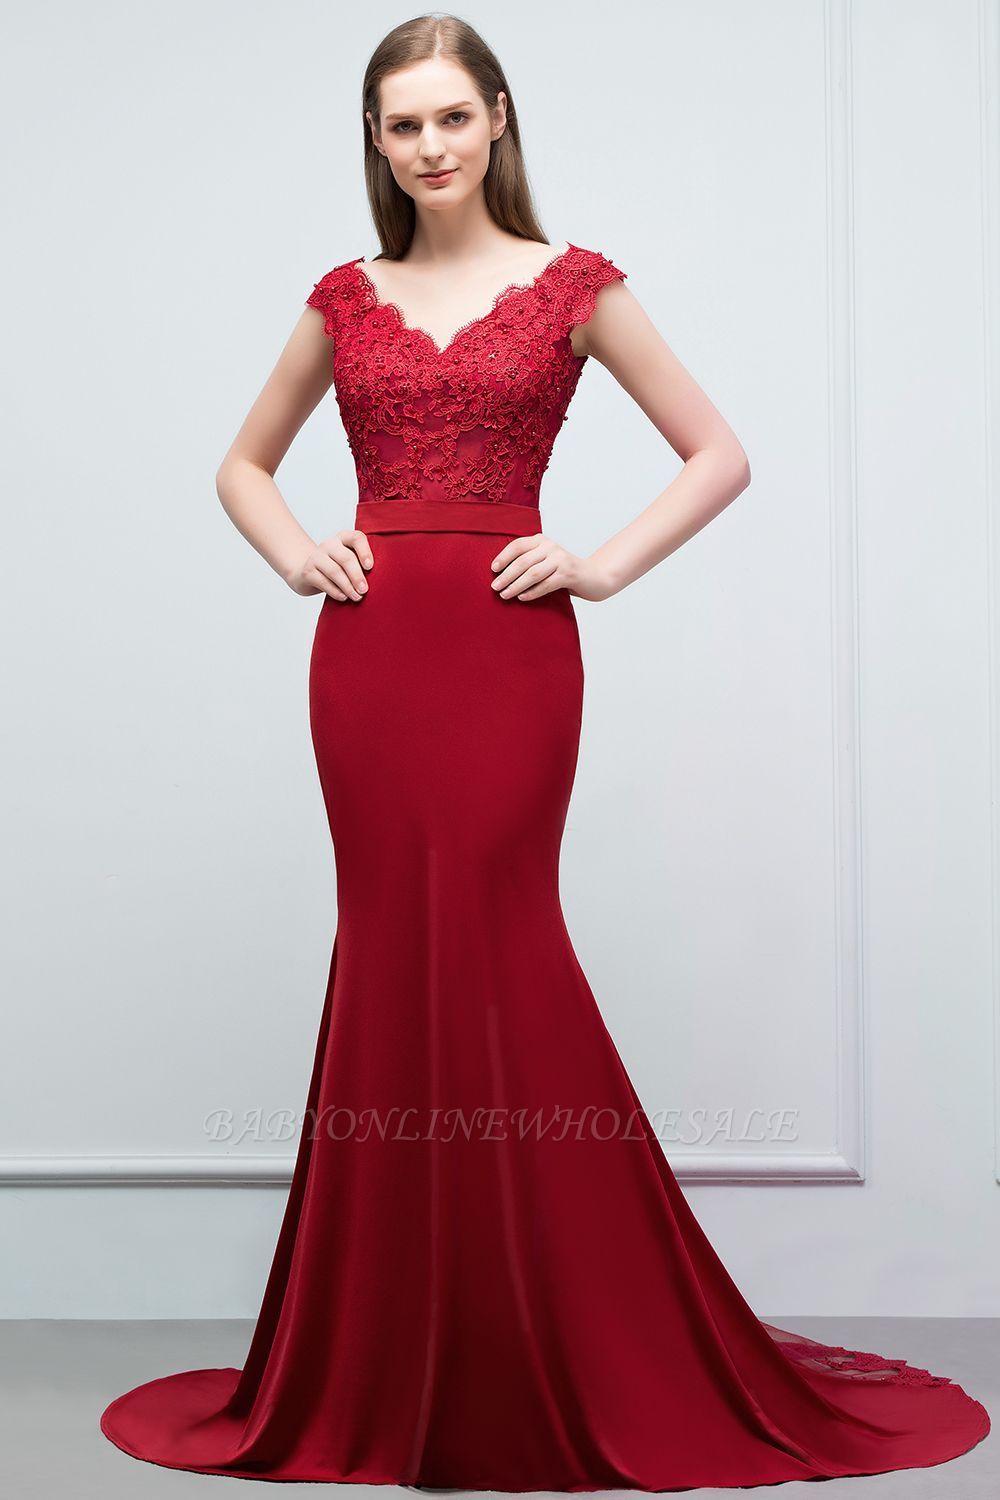 JOURNEY | Mermaid Floor Length V-neck Appliques Beads Prom Dresses with Sash